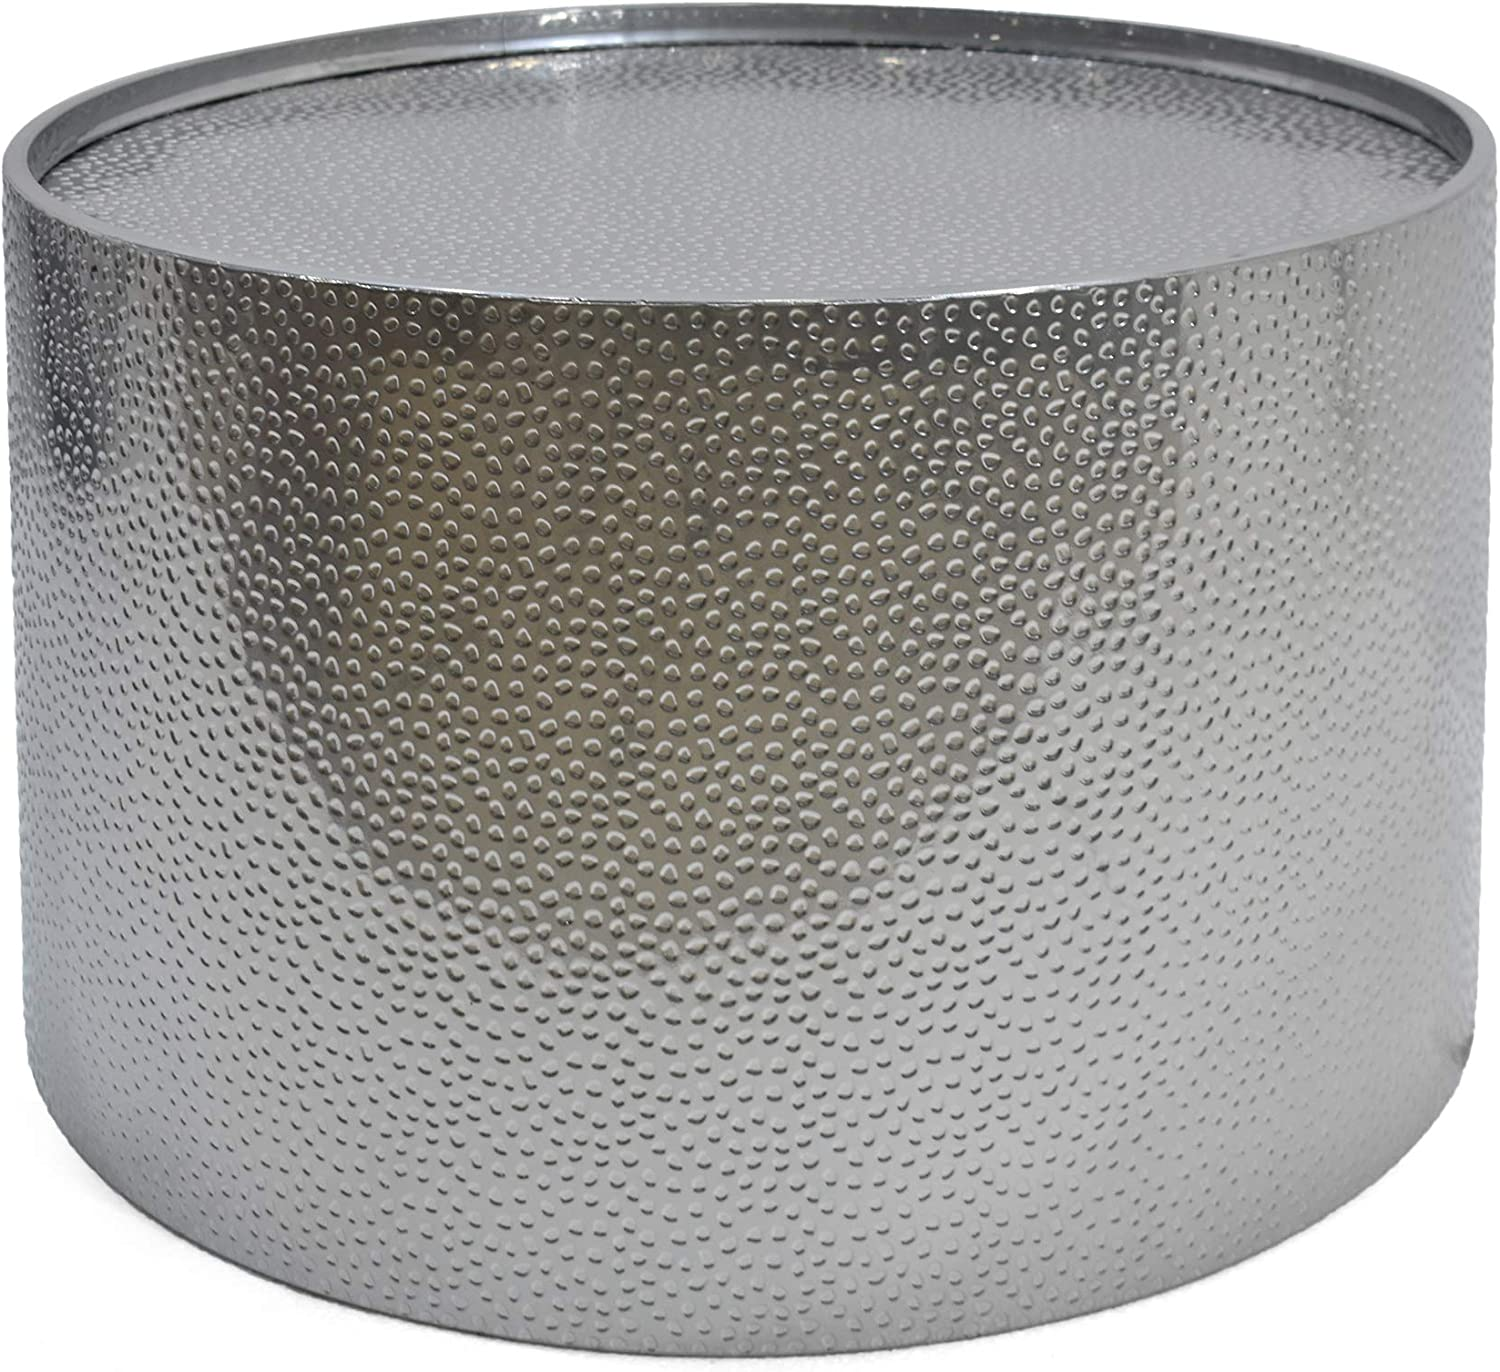 """Christopher Knight Home Rache Modern Round Coffee Table with Hammered Iron, Silver, 26. 00"""" L x 26. 00"""" W x 17. 00"""" H: Kitchen & Dining"""